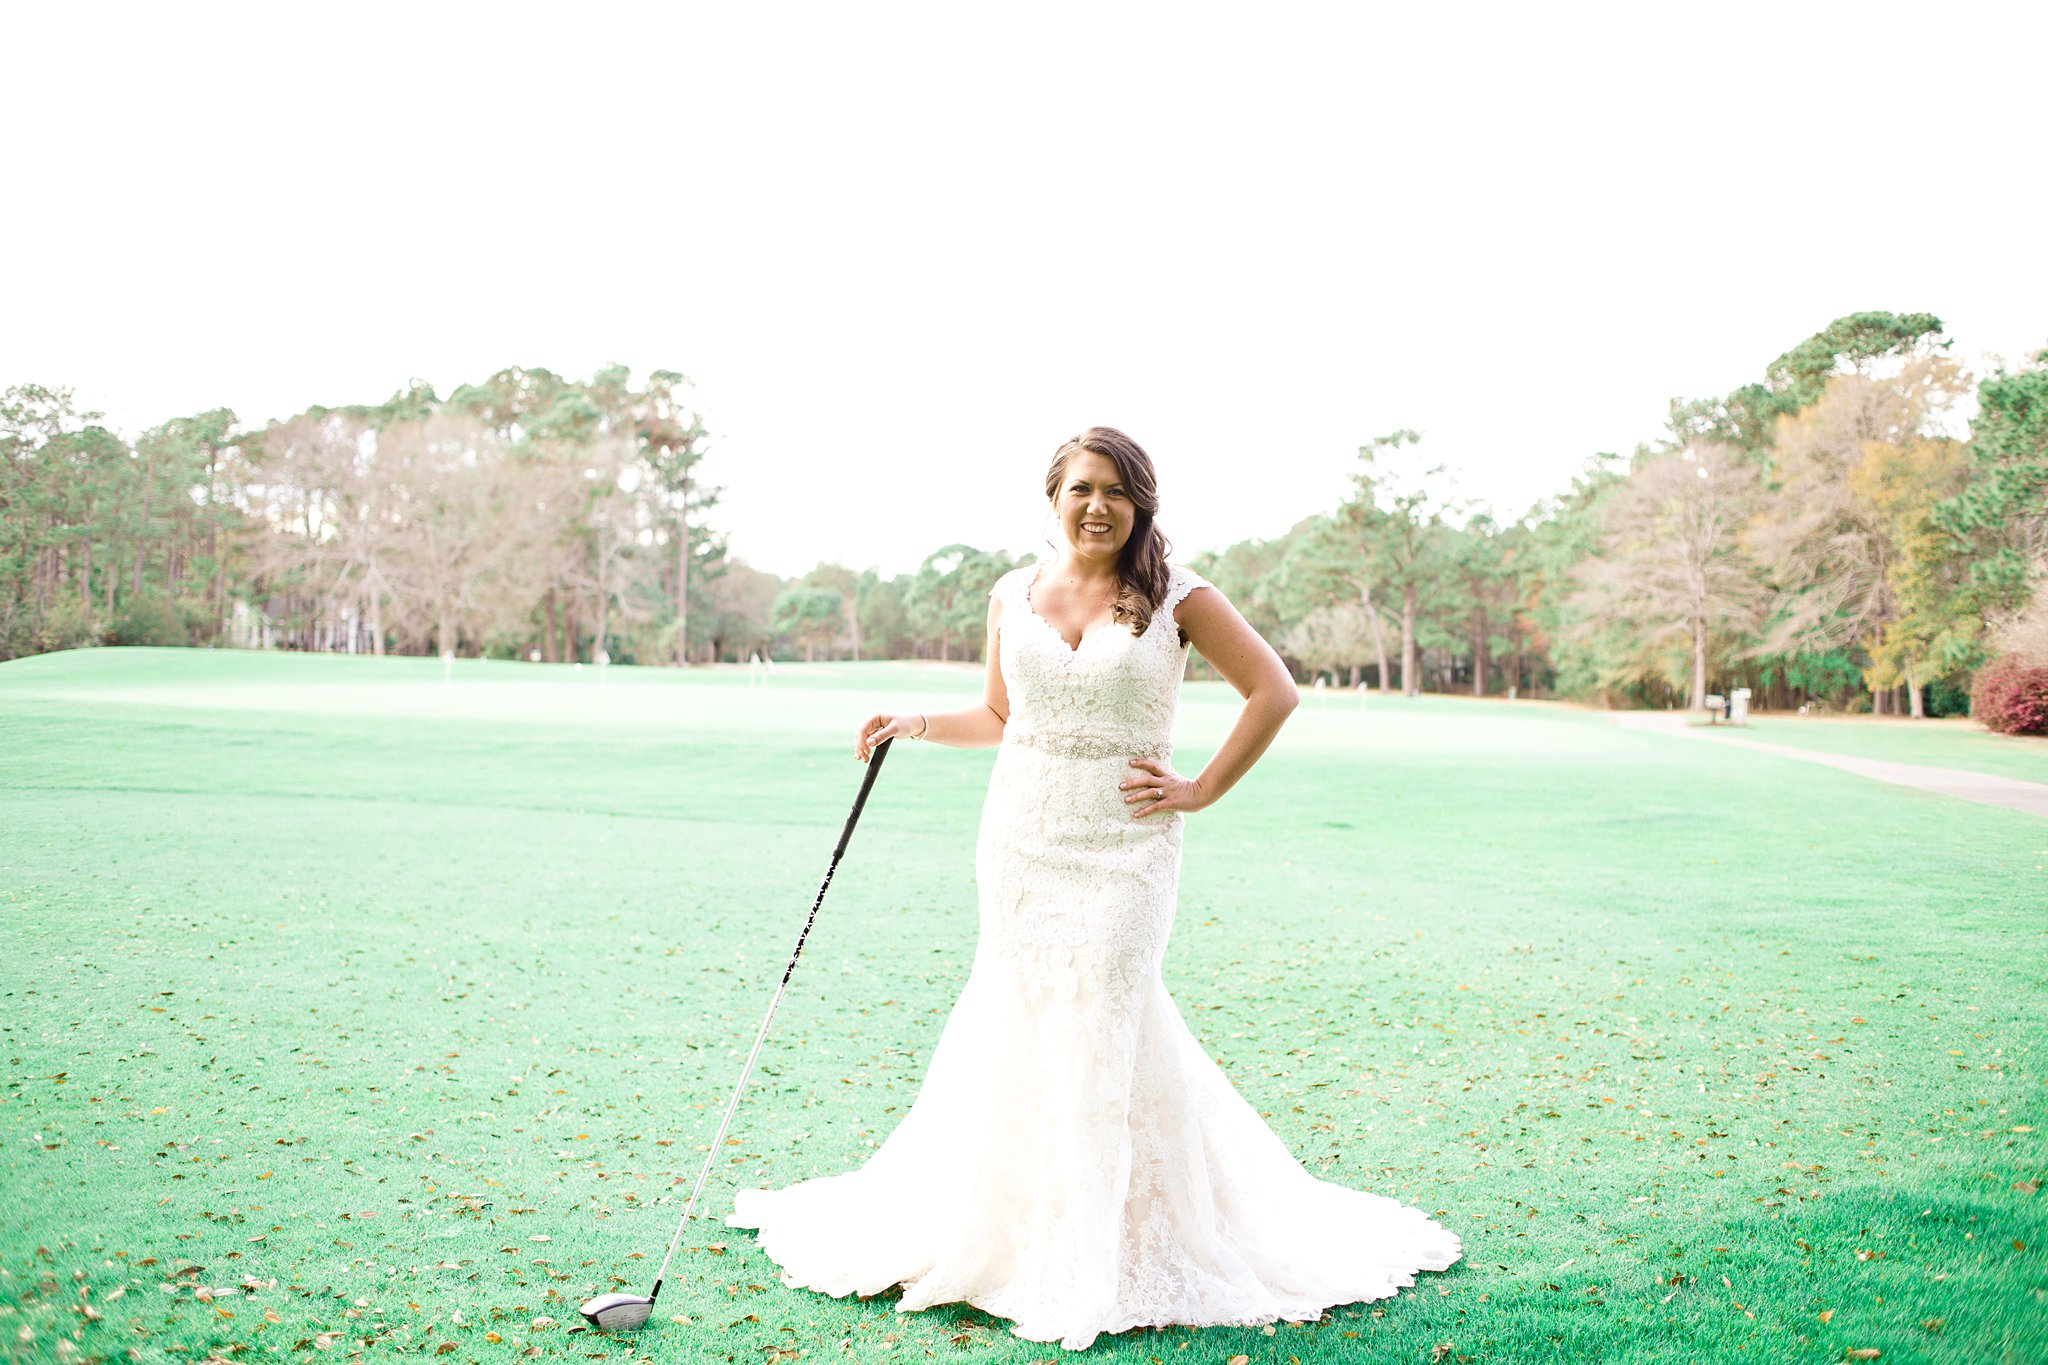 litchfield-golf-country-club-bridal-session-pawleys-island-sc-photos_0135.jpg